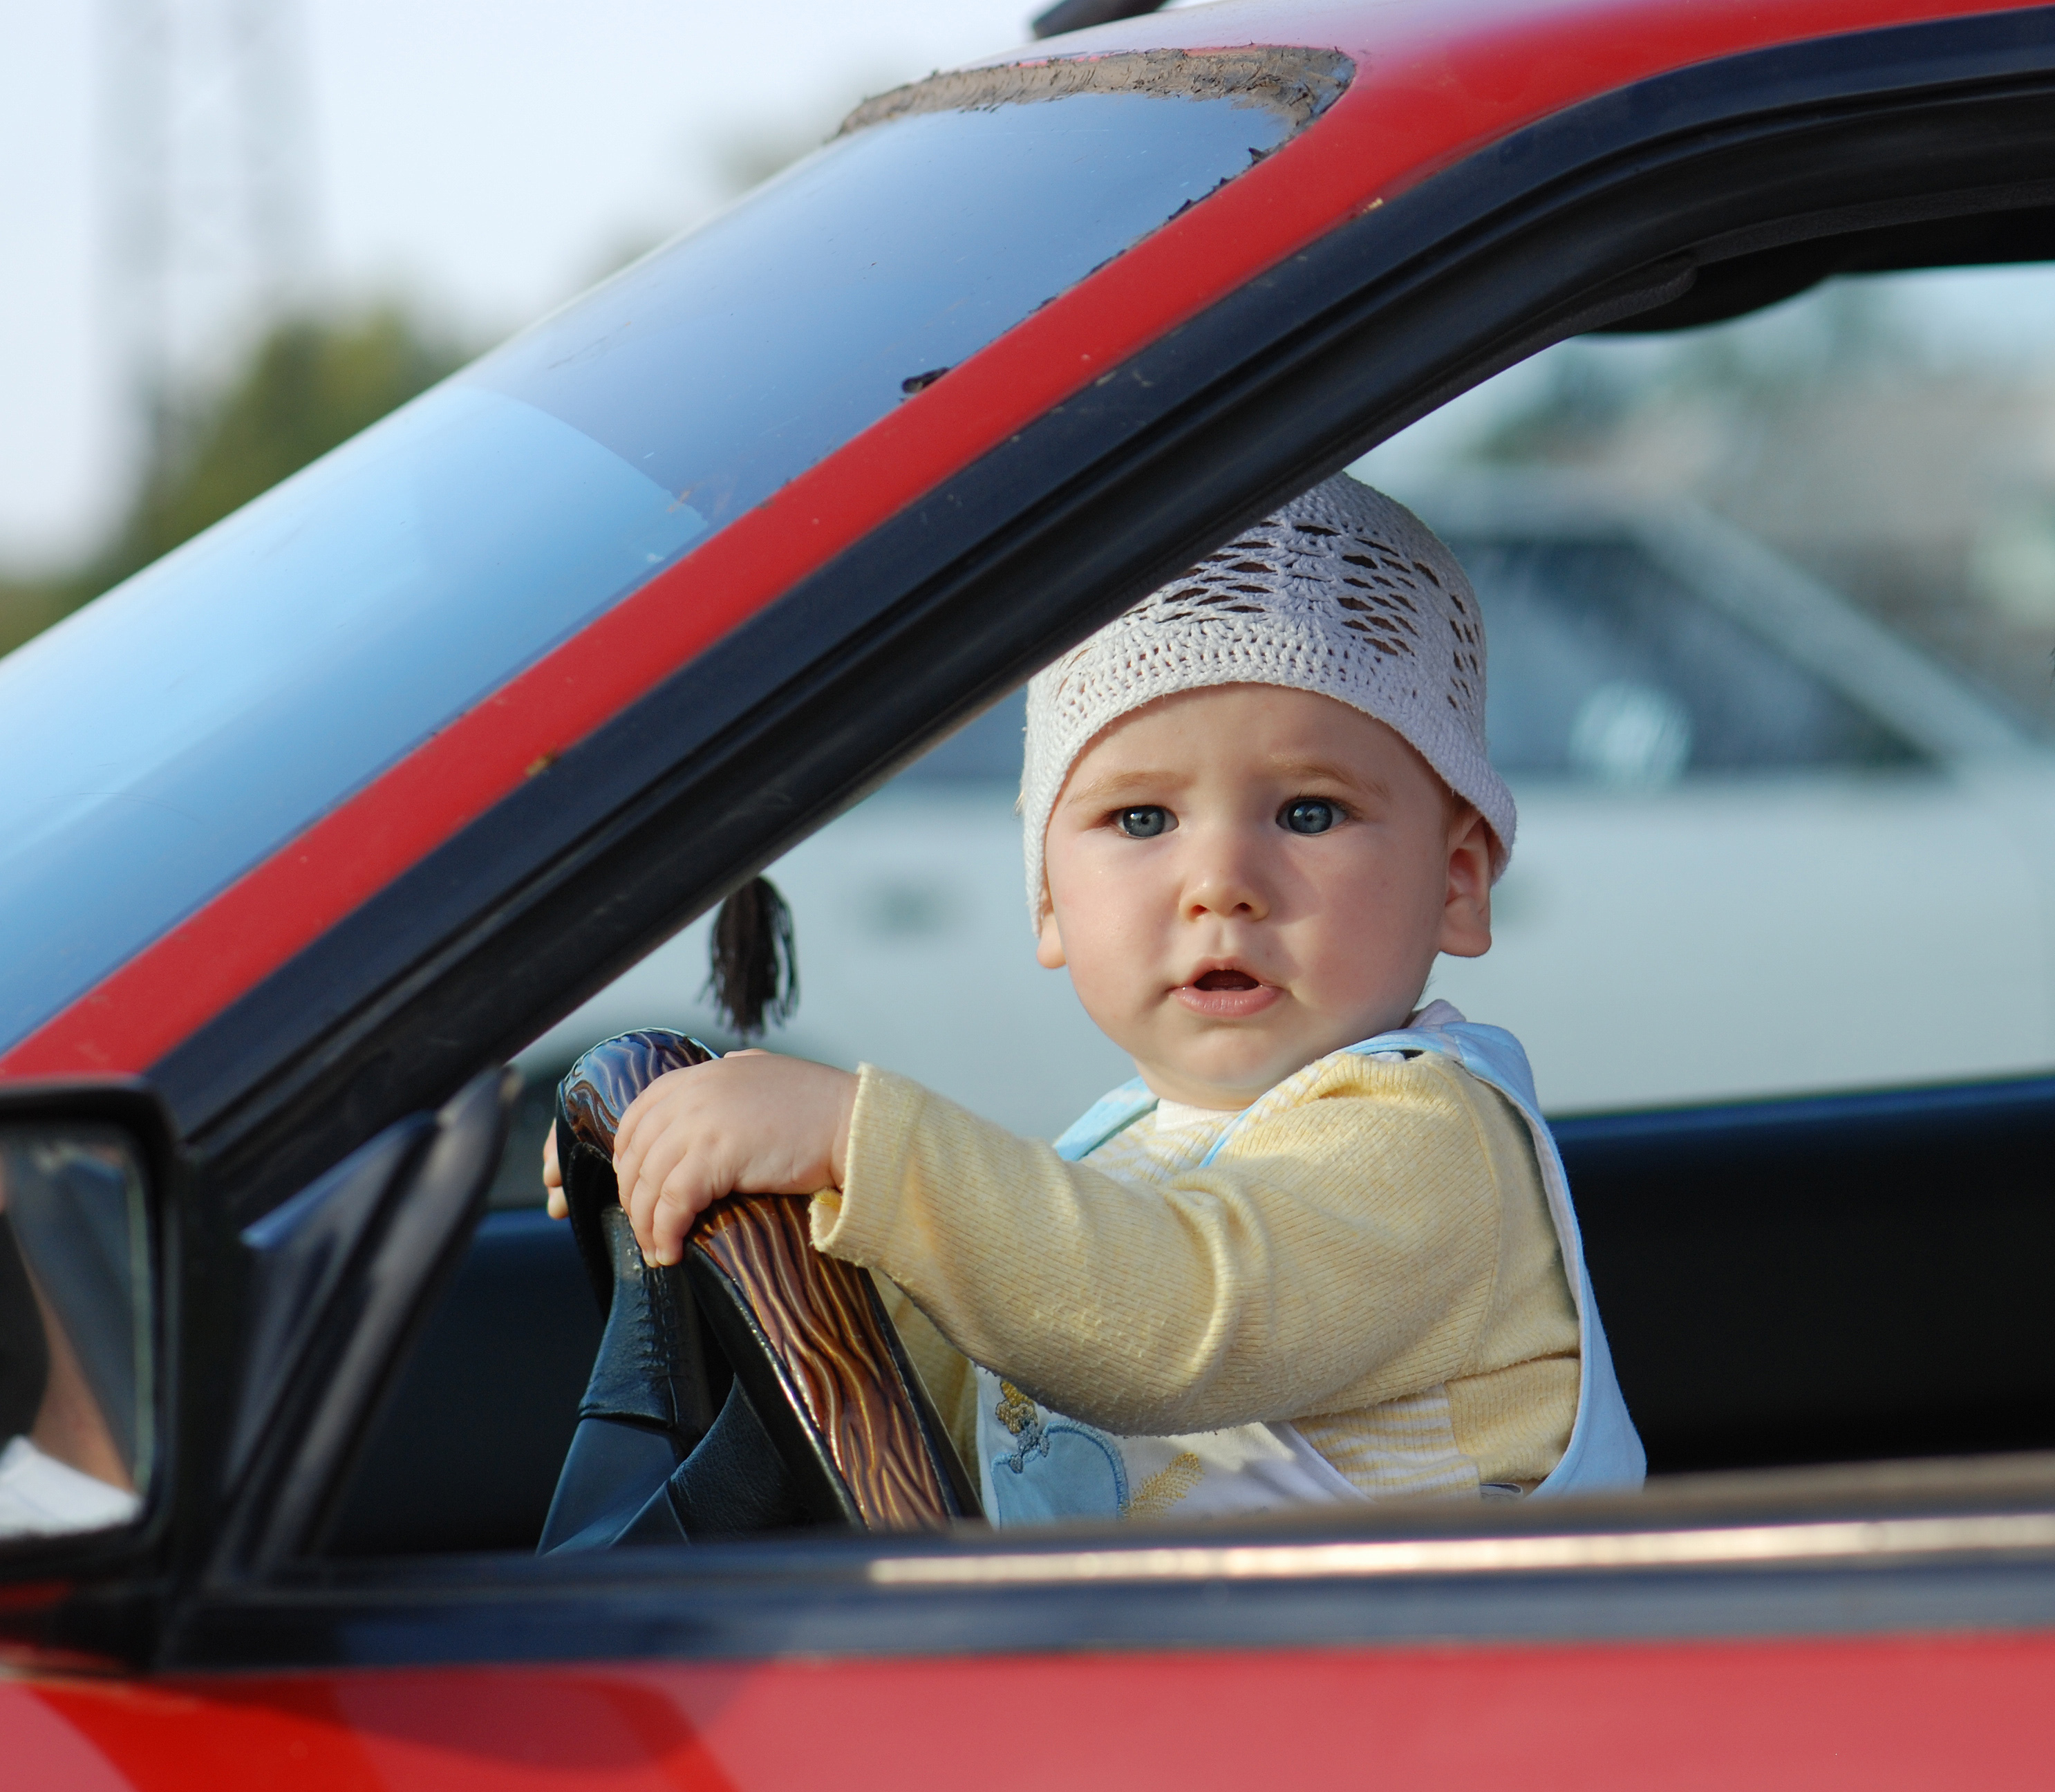 Baby Driving Car